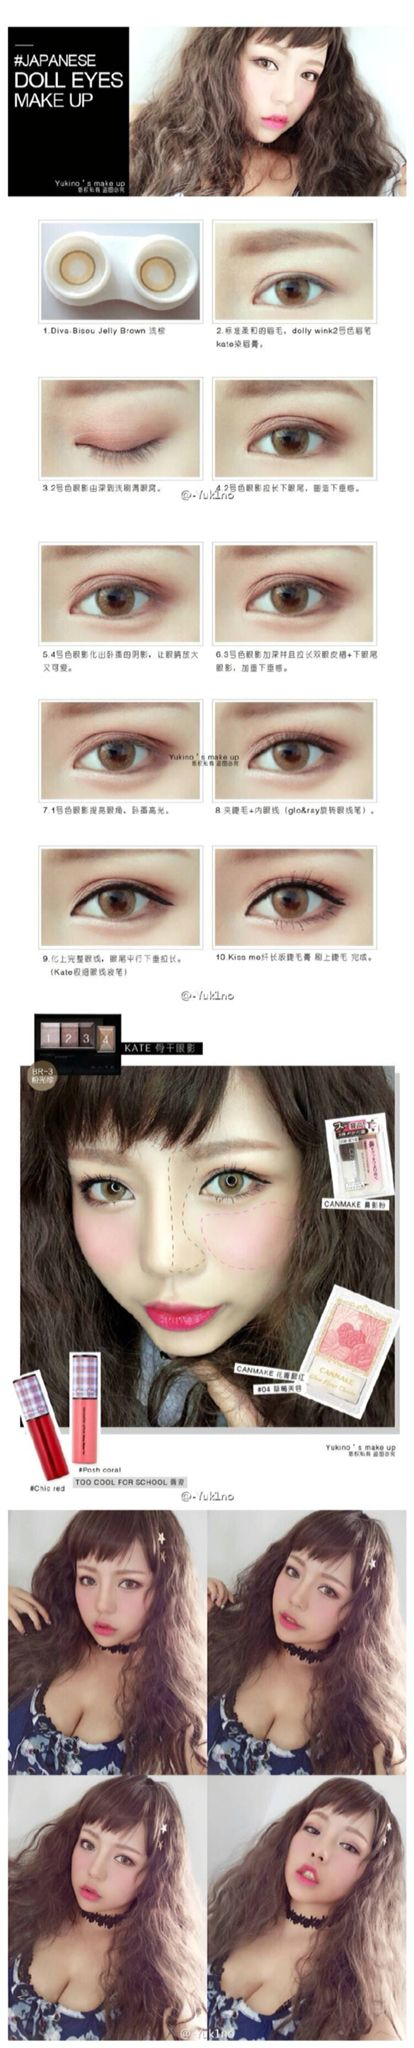 Japanese style eye make up